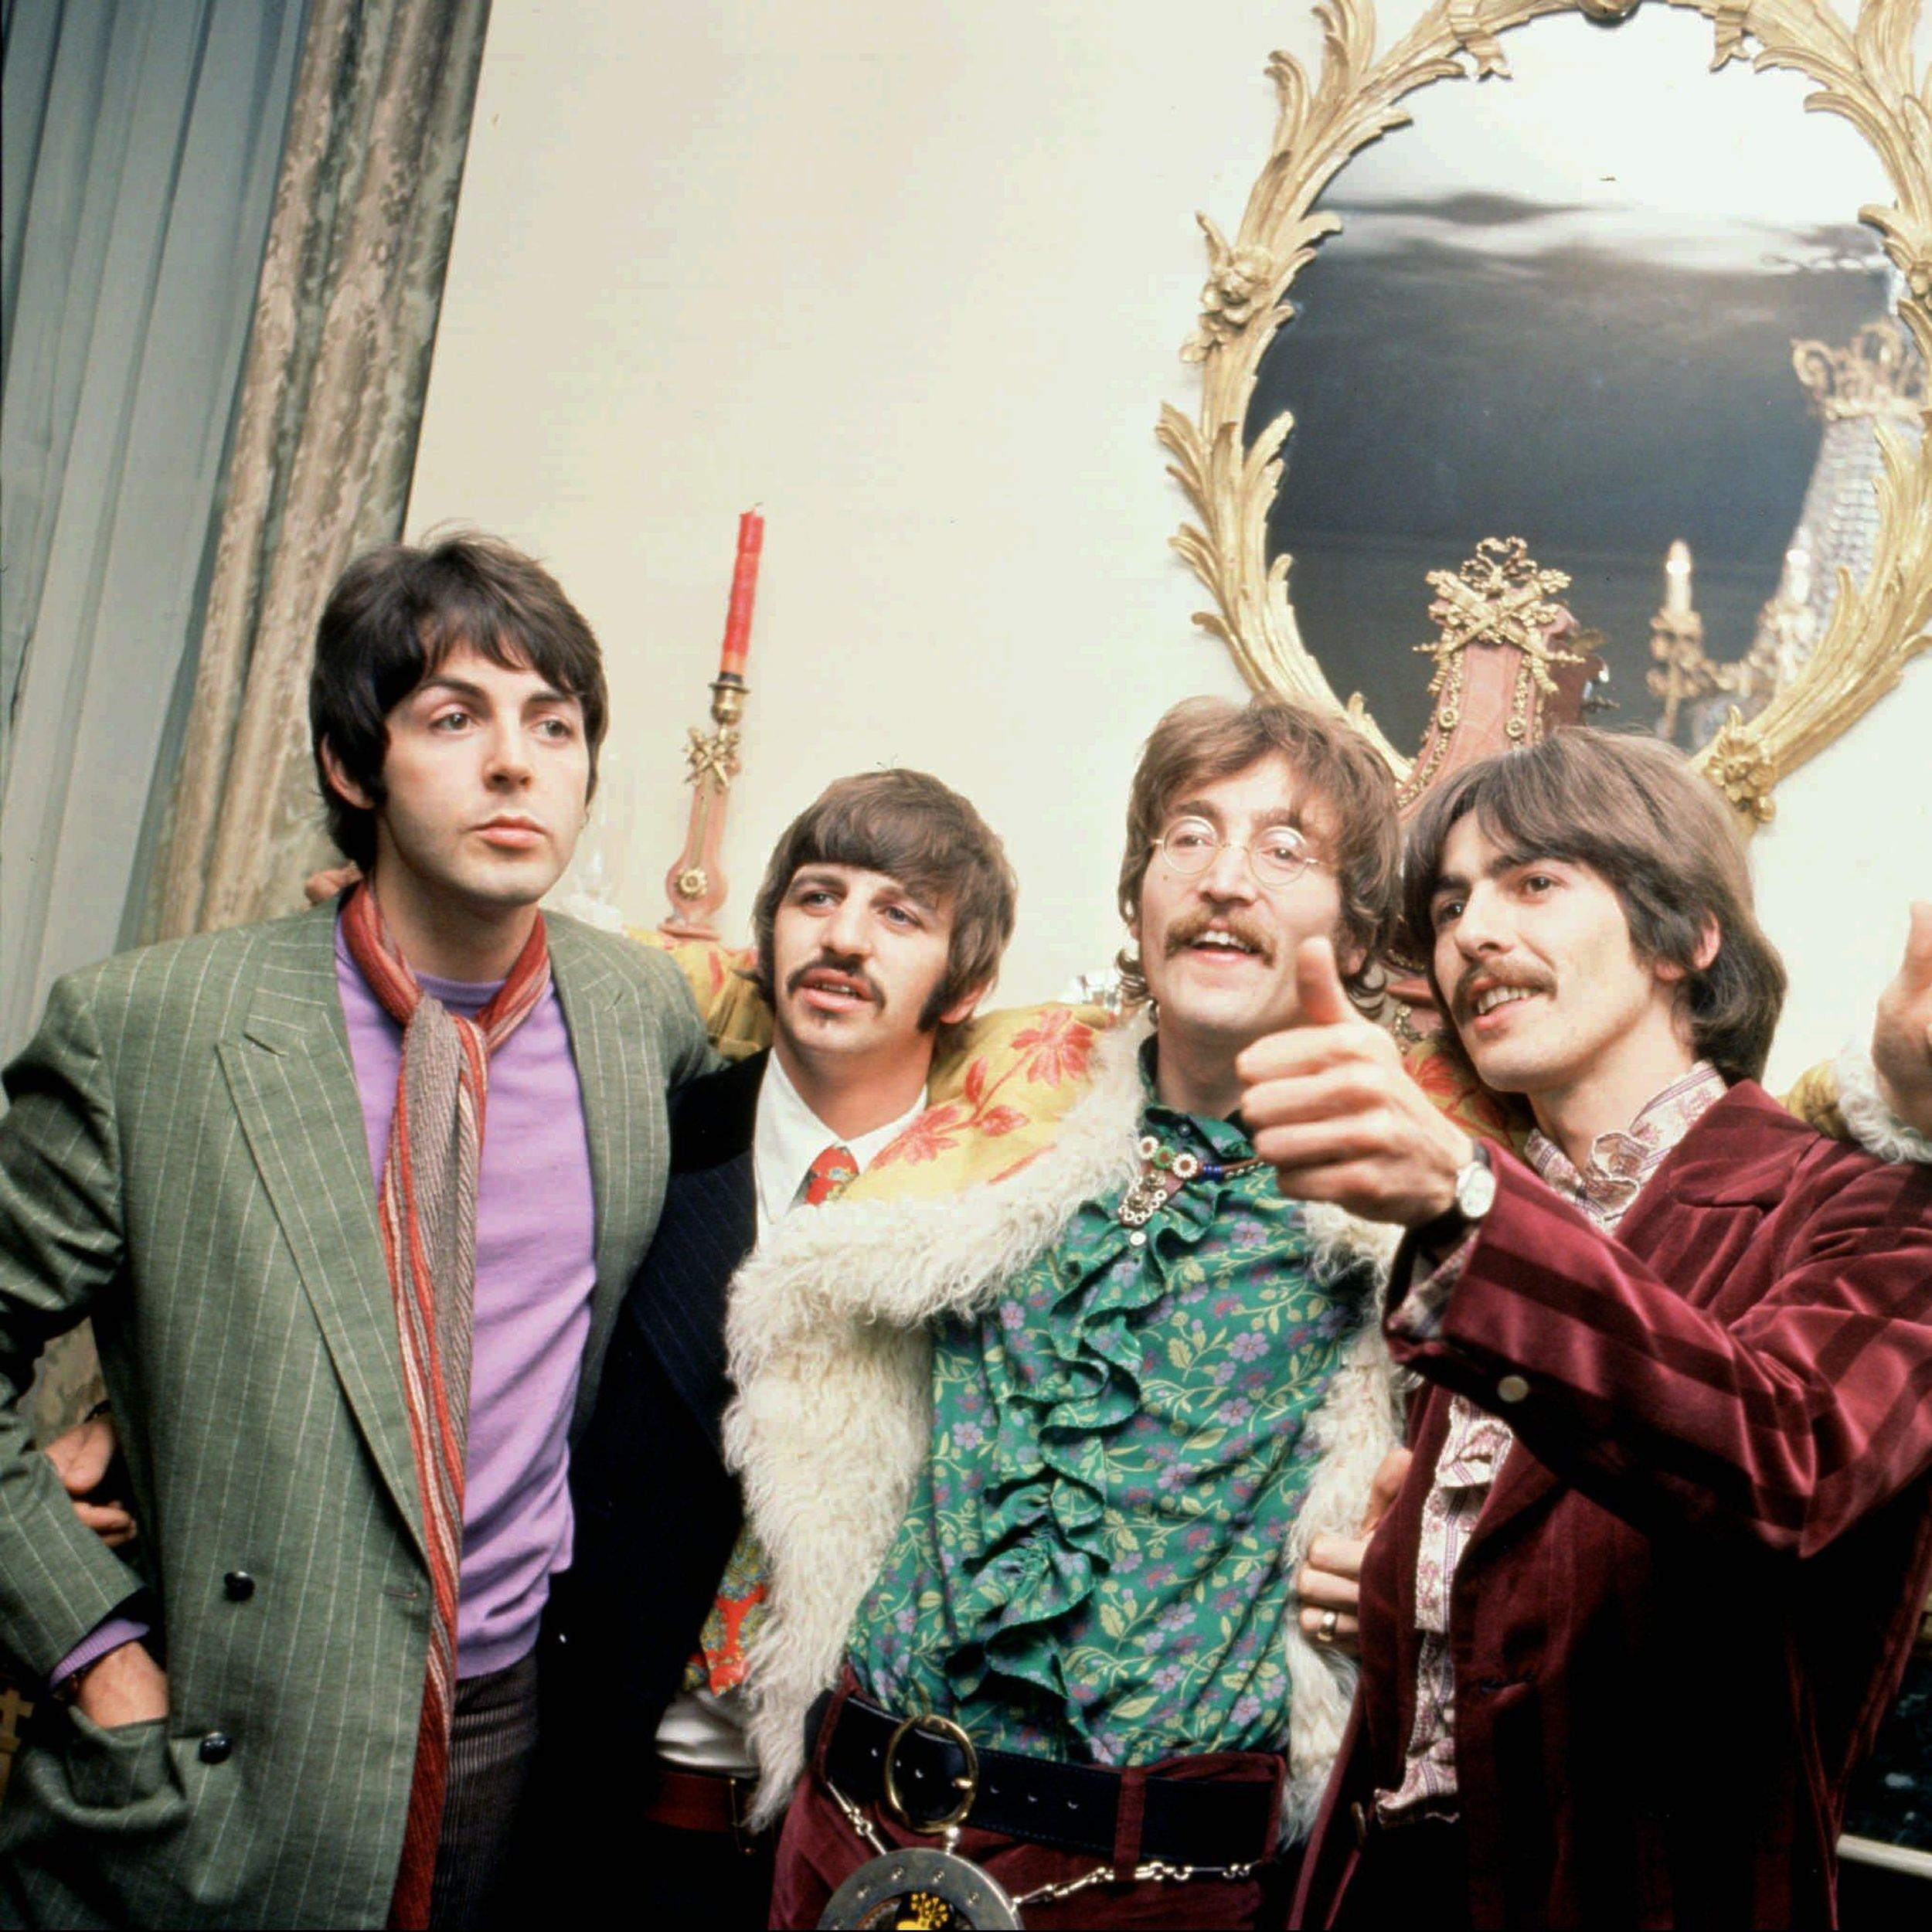 The Beatles Sgt Pepper At 50 Gets A Remix That Brings Back 1967 The Spokesman Review